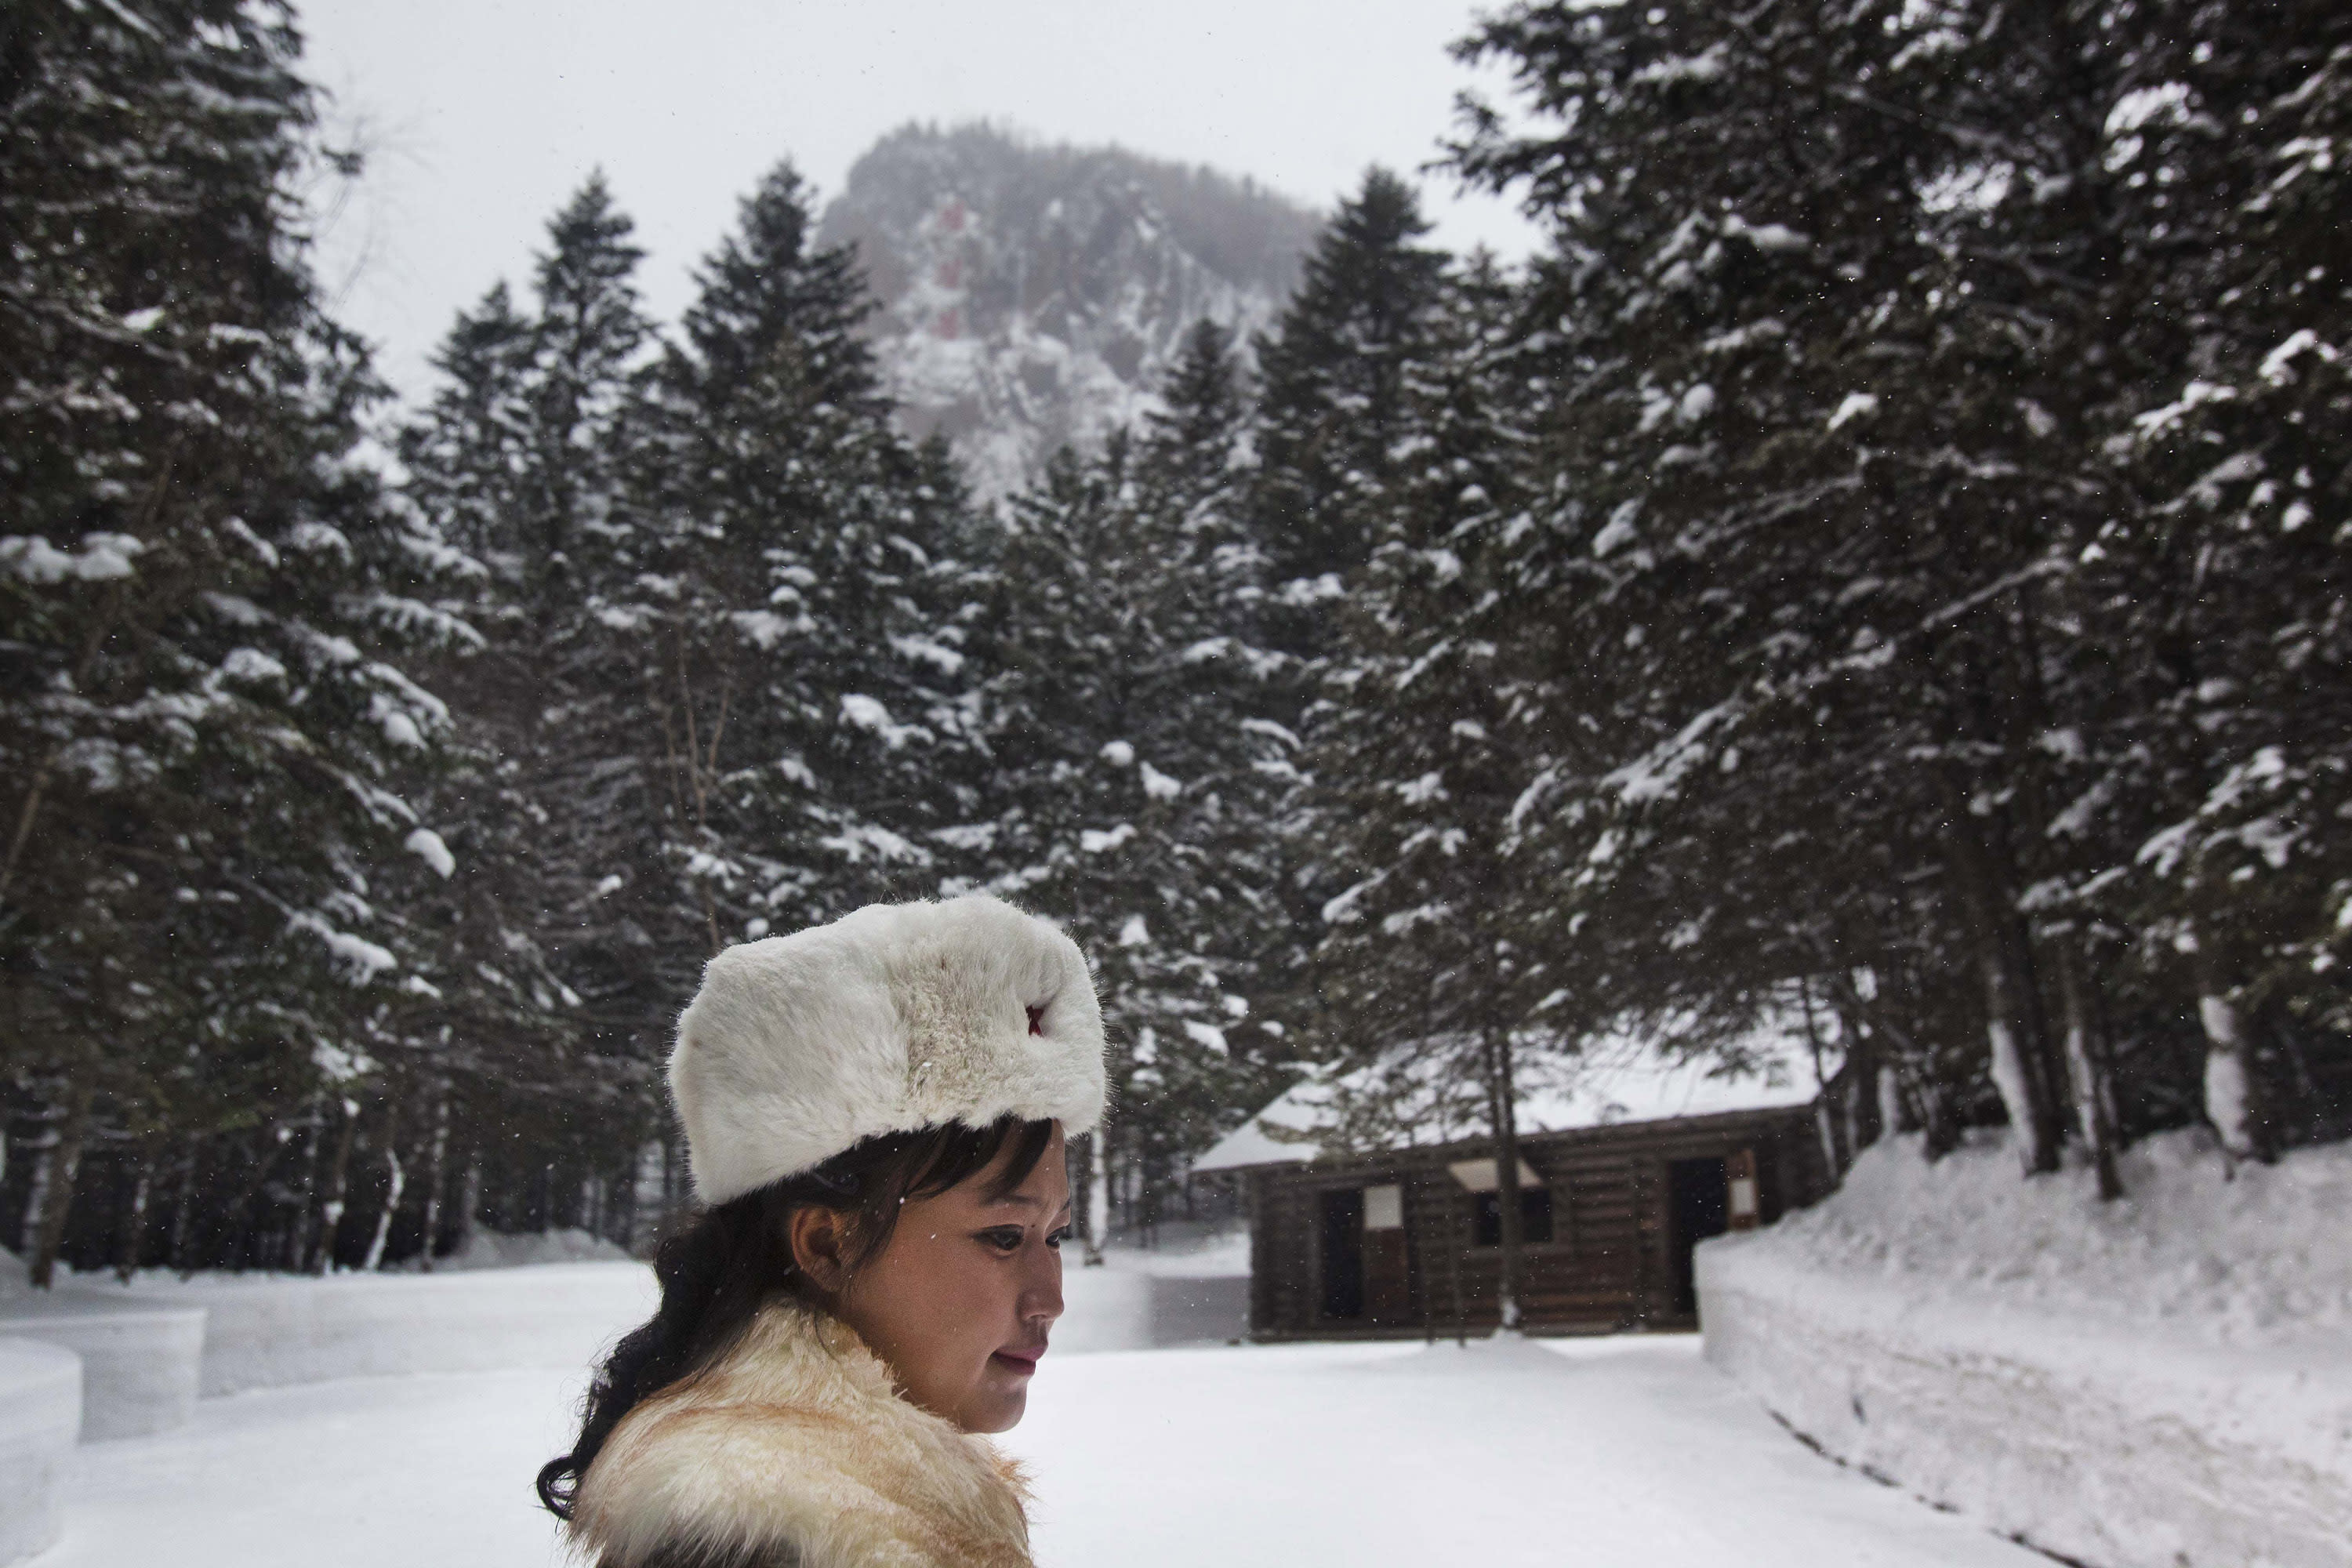 In this Monday, April 2, 2012 photo, a North Korean soldier, working as a guide, walks near a cabin that is said to have been the home of the late North Korean leader Kim Il Sung and the birthplace of his son and late leader Kim Jong Il at what was a secret military camp during the fight against the Japanese at the foot of Mount Paektu, North Korea. (AP Photo/David Guttenfelder)